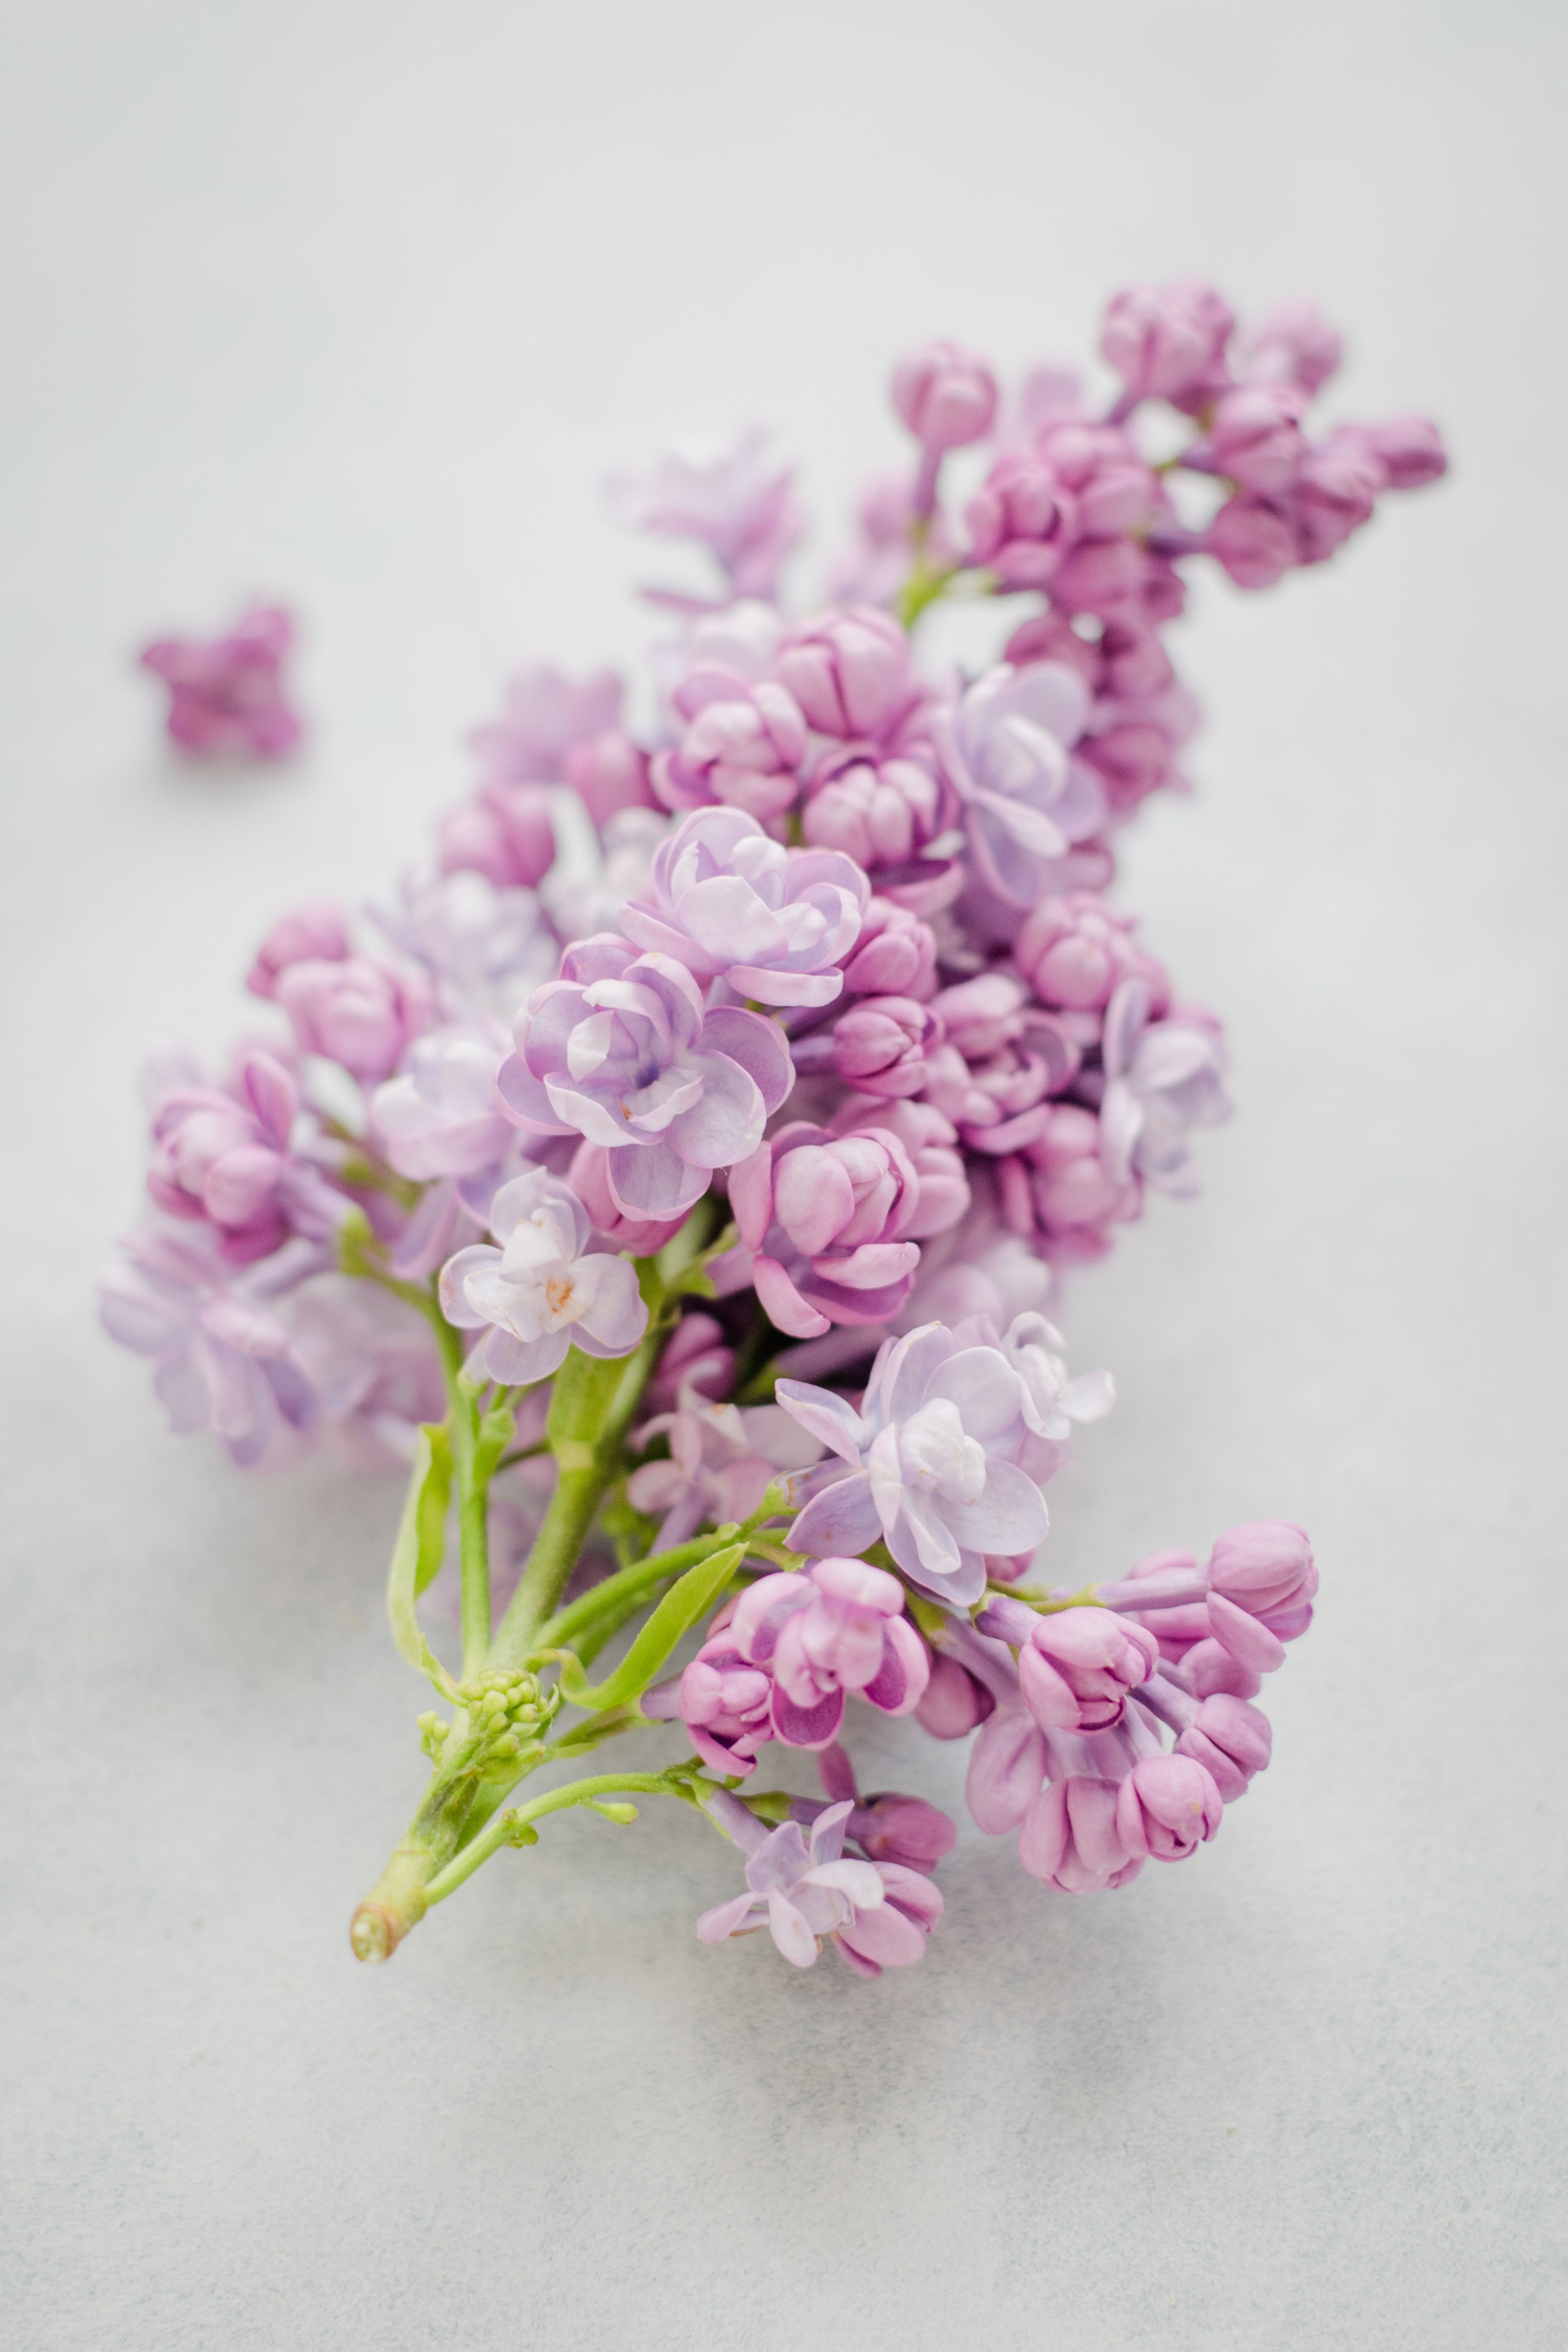 Language Of Flowers Series Lilac Means Spring Renewal Confidence Lilacs Have A Deep Rooted History Originating In Flower Pictures Flowers Spring Flowers